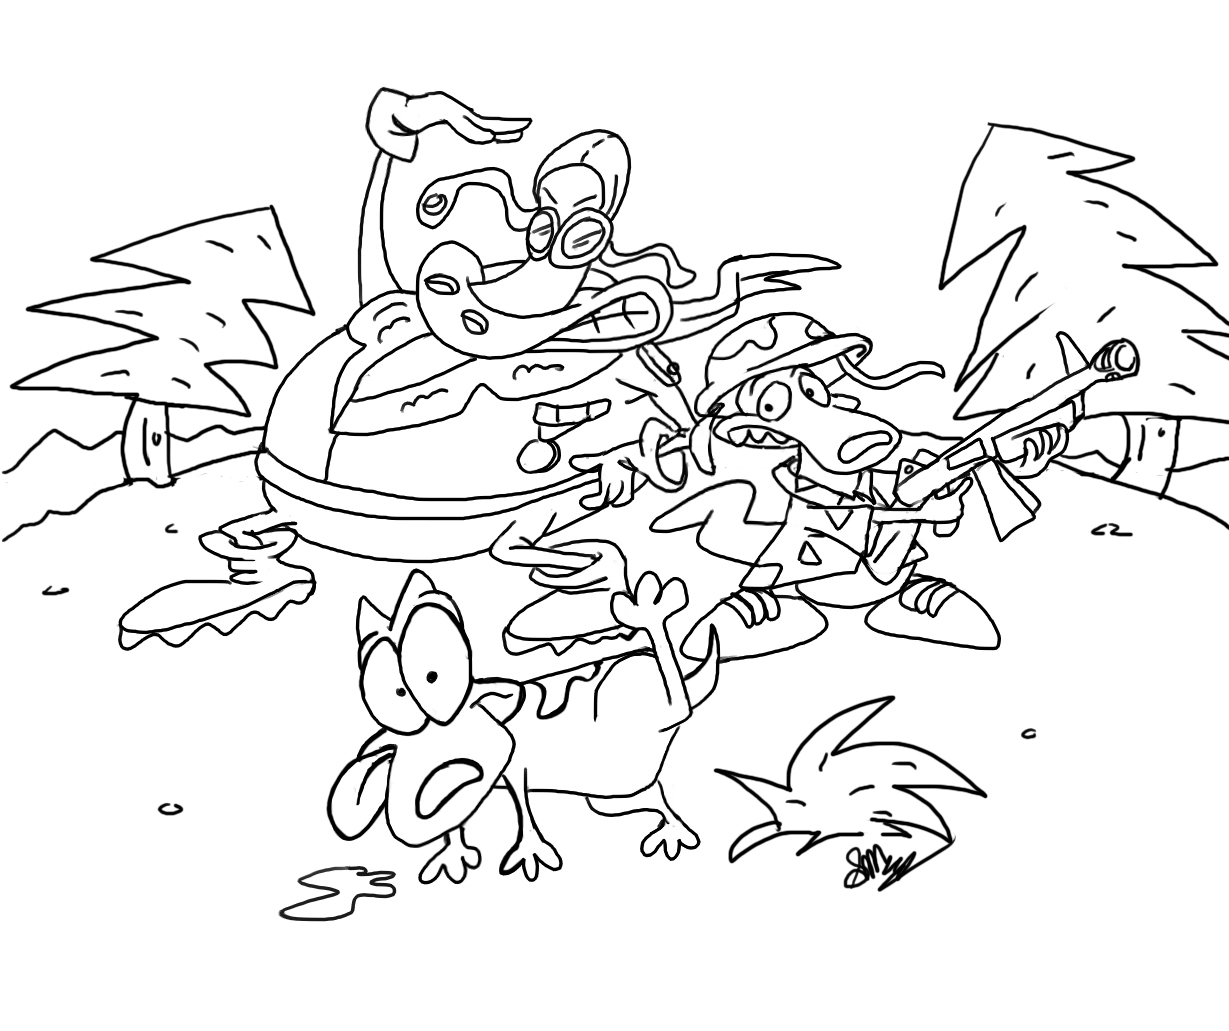 rockos modern life coloring pages - photo#15